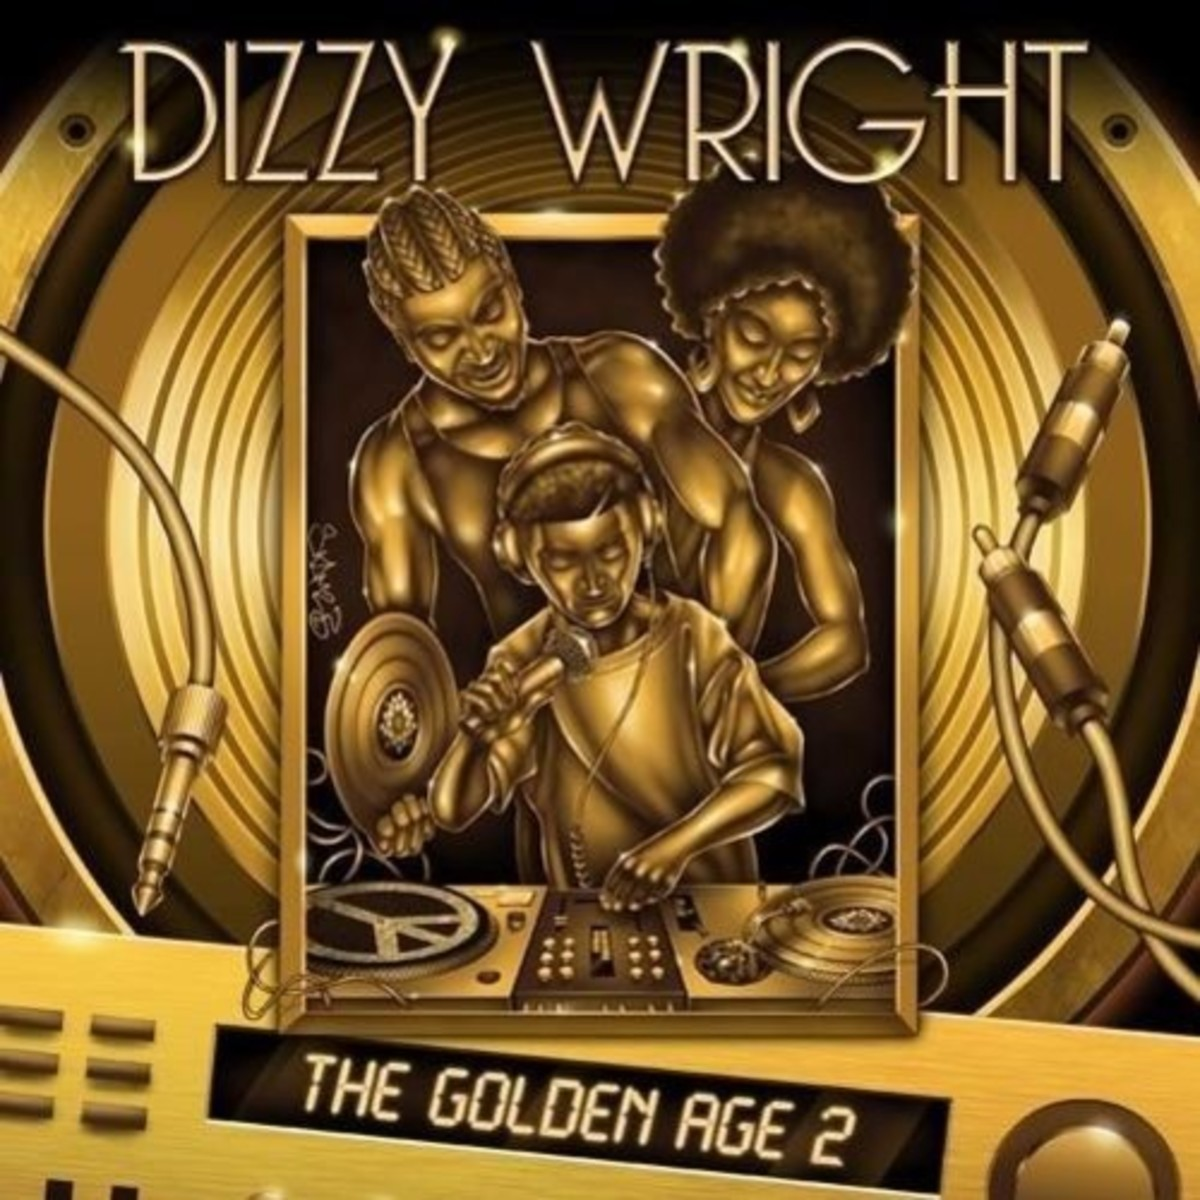 dizzy-wright-golden-age-2.jpg